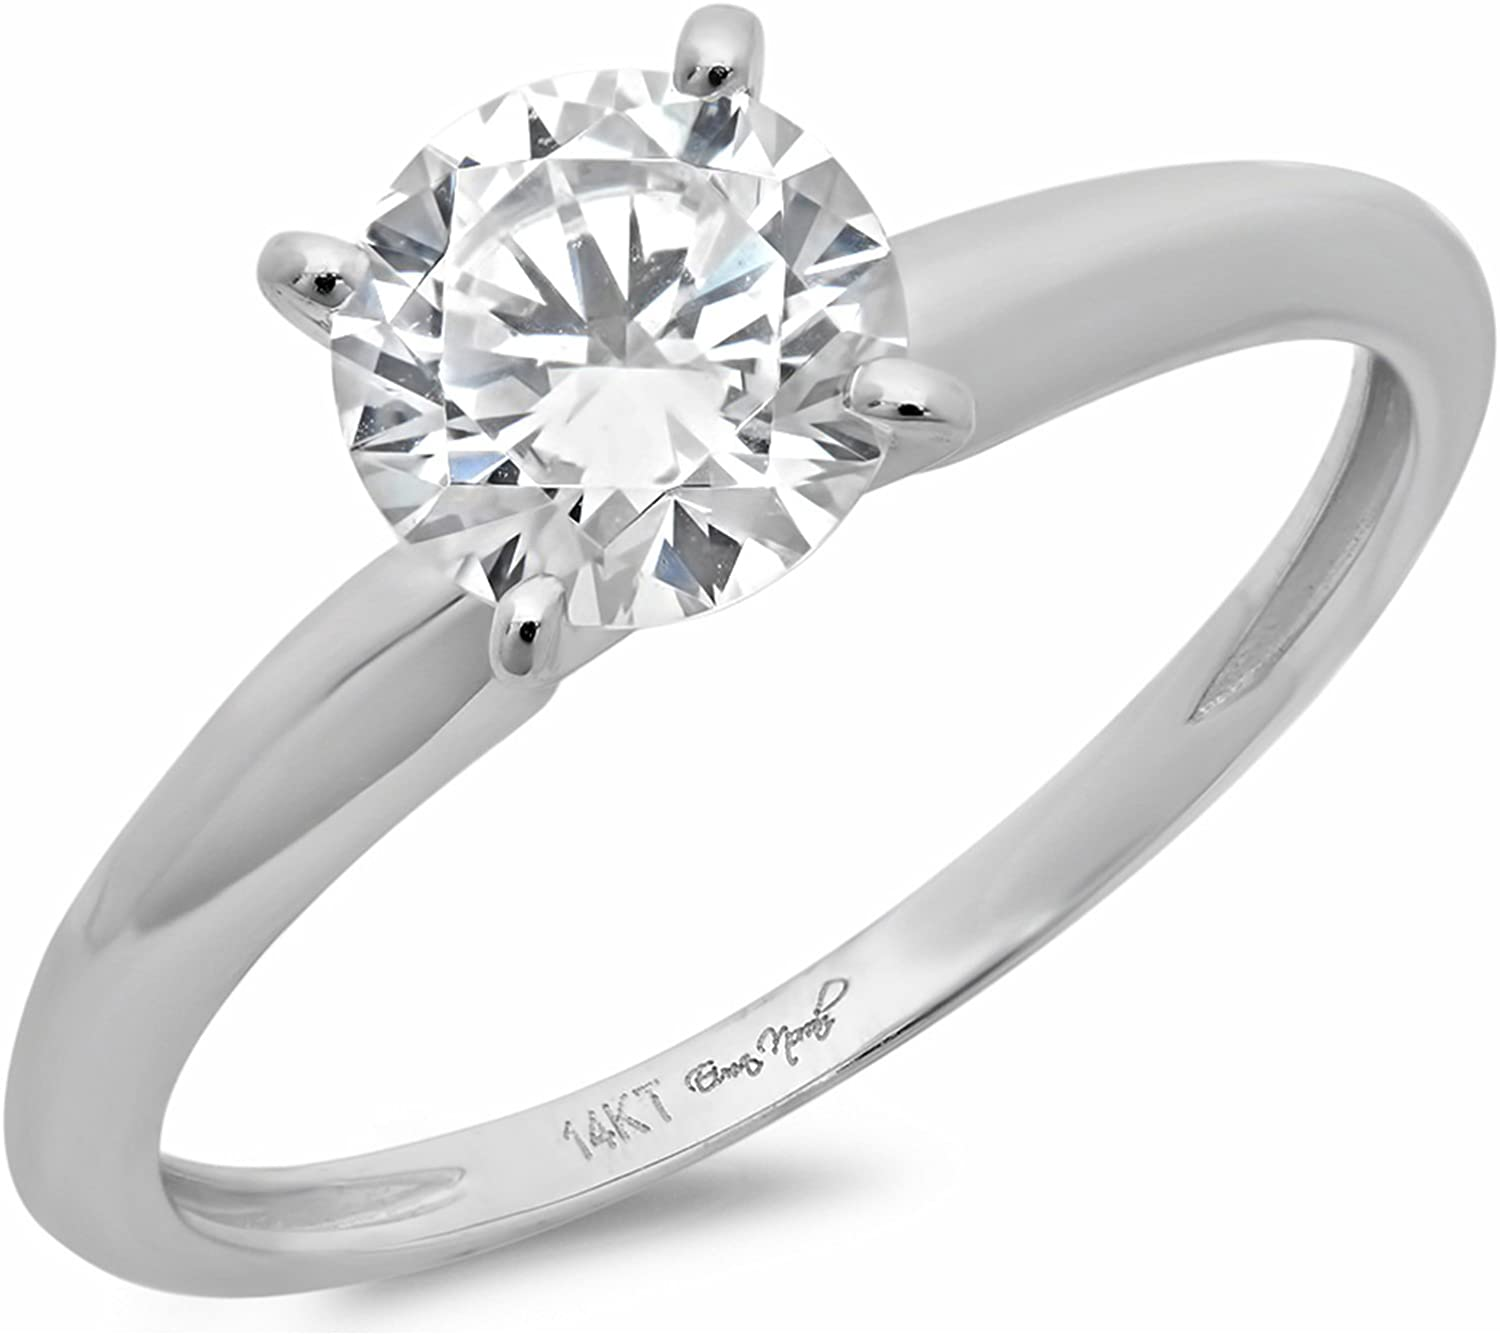 1.50 ct Brilliant Round Cut Solitaire Highest Quality Lab Created White Sapphire Ideal VVS1 D 4-Prong Engagement Wedding Bridal Promise Anniversary Ring in Solid Real 14k White Gold for Women